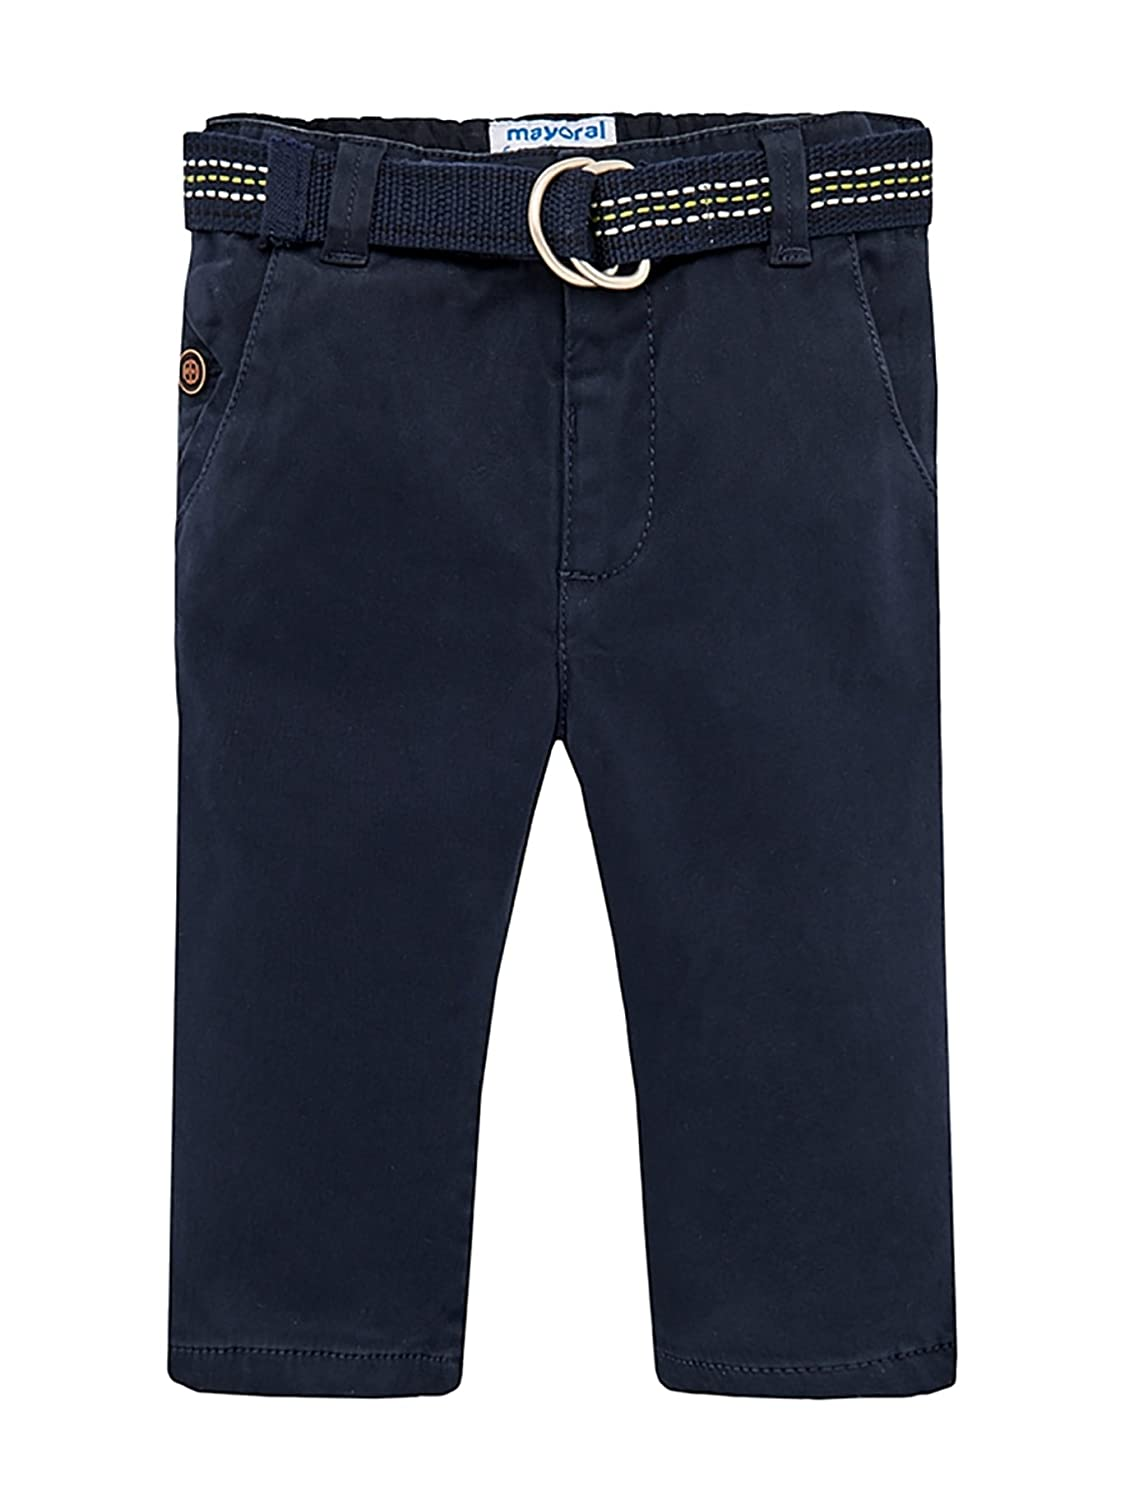 Mayoral Navy 2562 Chino Pants for Baby-Boys